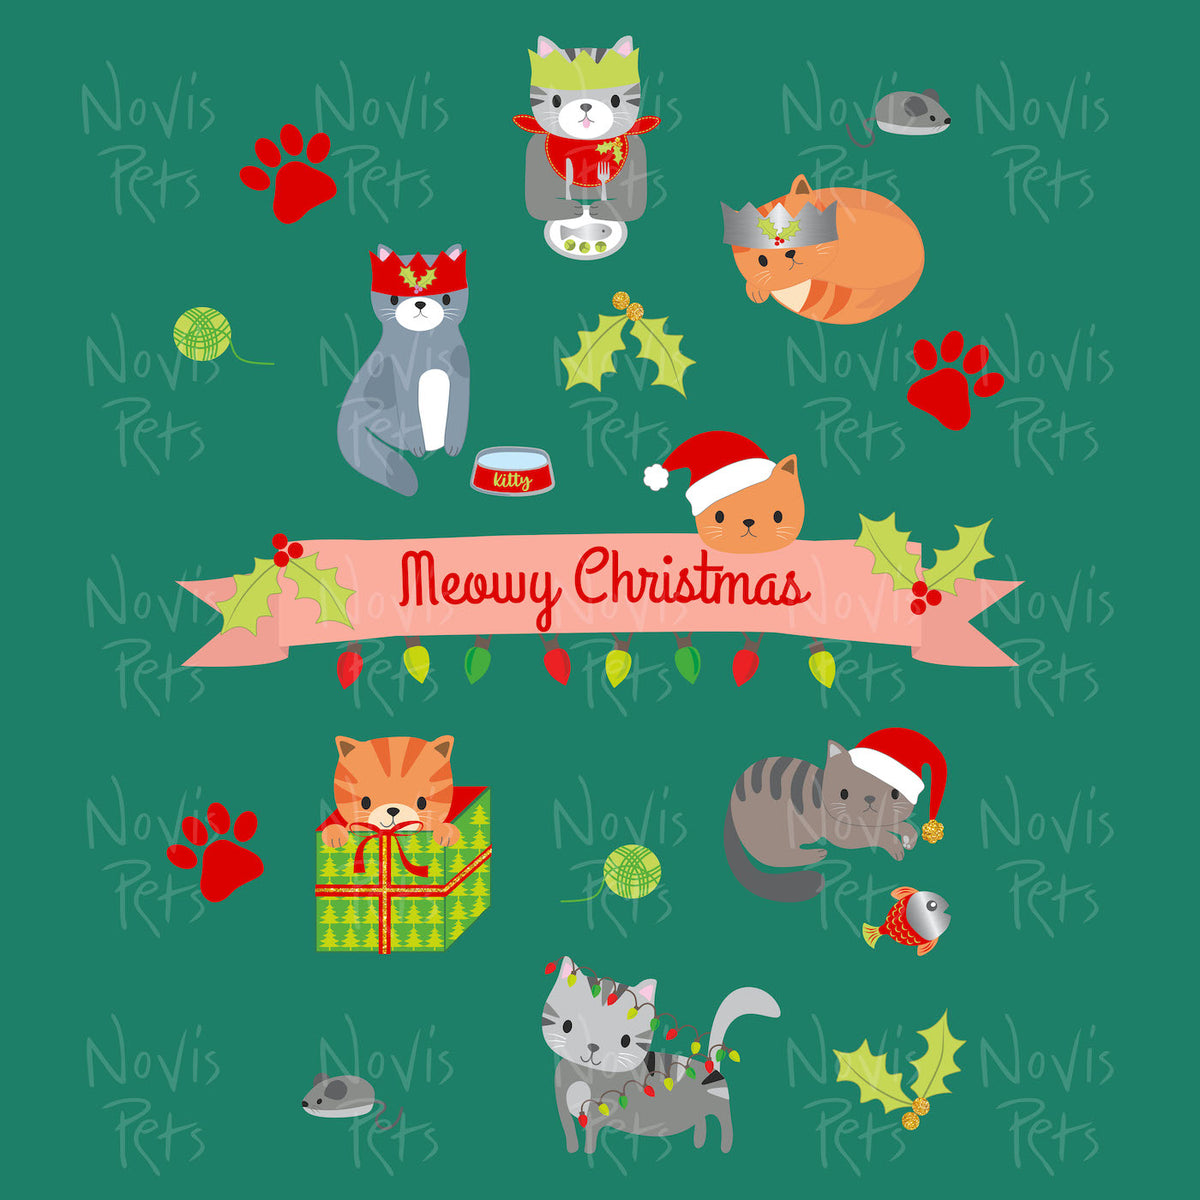 Meowy Christmas Funny Cat Shirt For The Holidays For Women Men, Cat Lover Gift, Crazy Cat Lady, Cute Cat Graphic, Short-Sleeve Unisex Tshirt